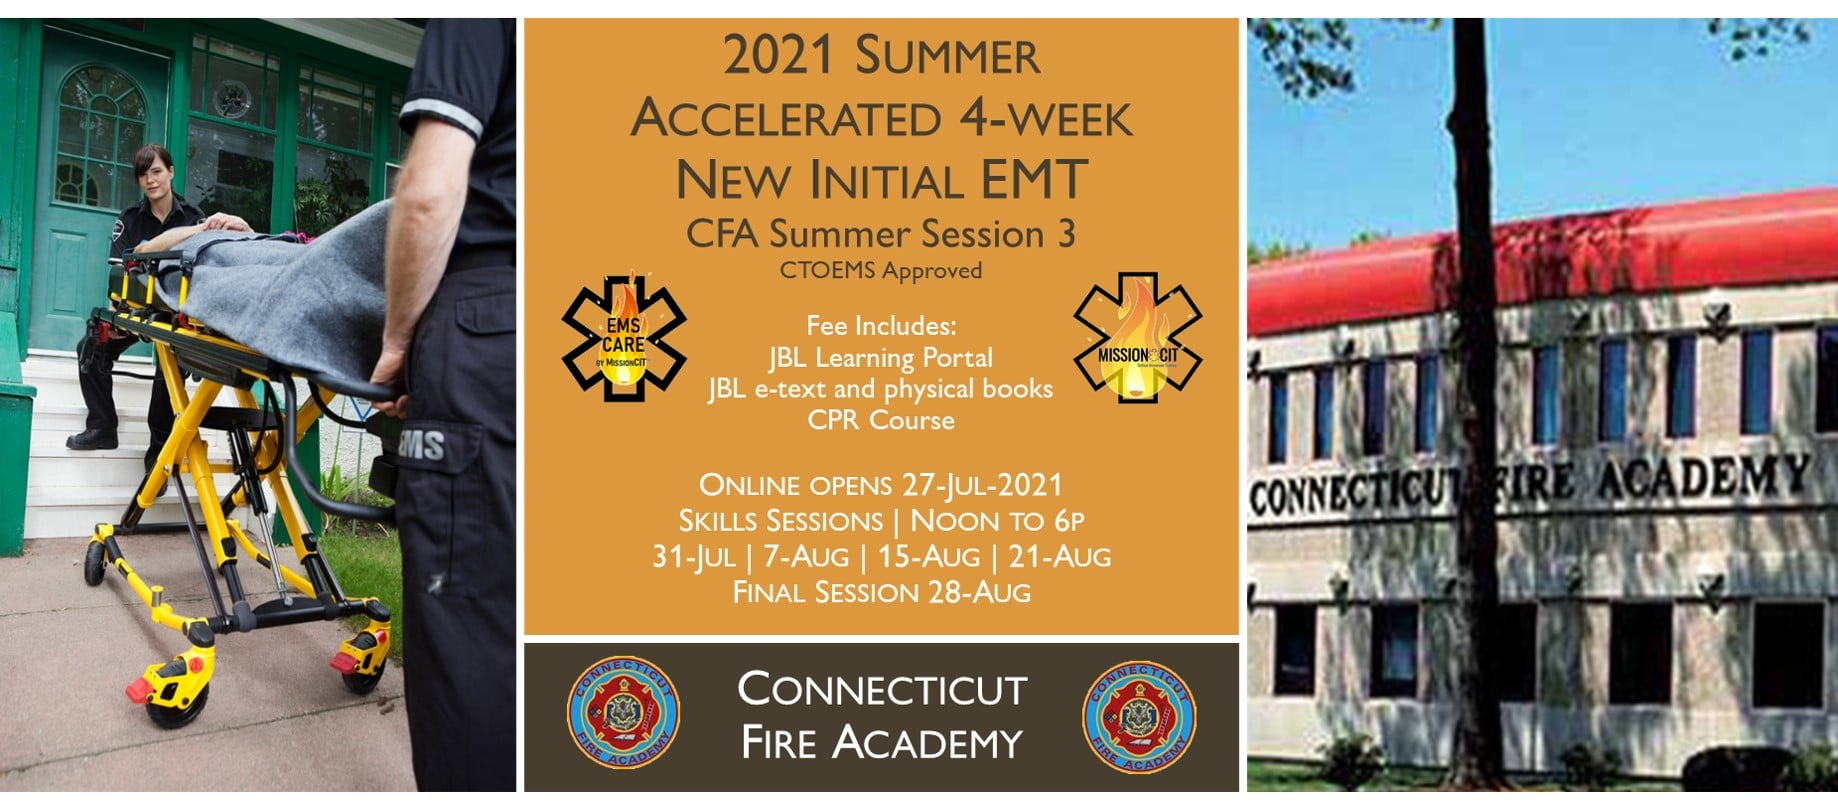 2021 Summer EMT Accelerated Initial Course | CFA Session 3